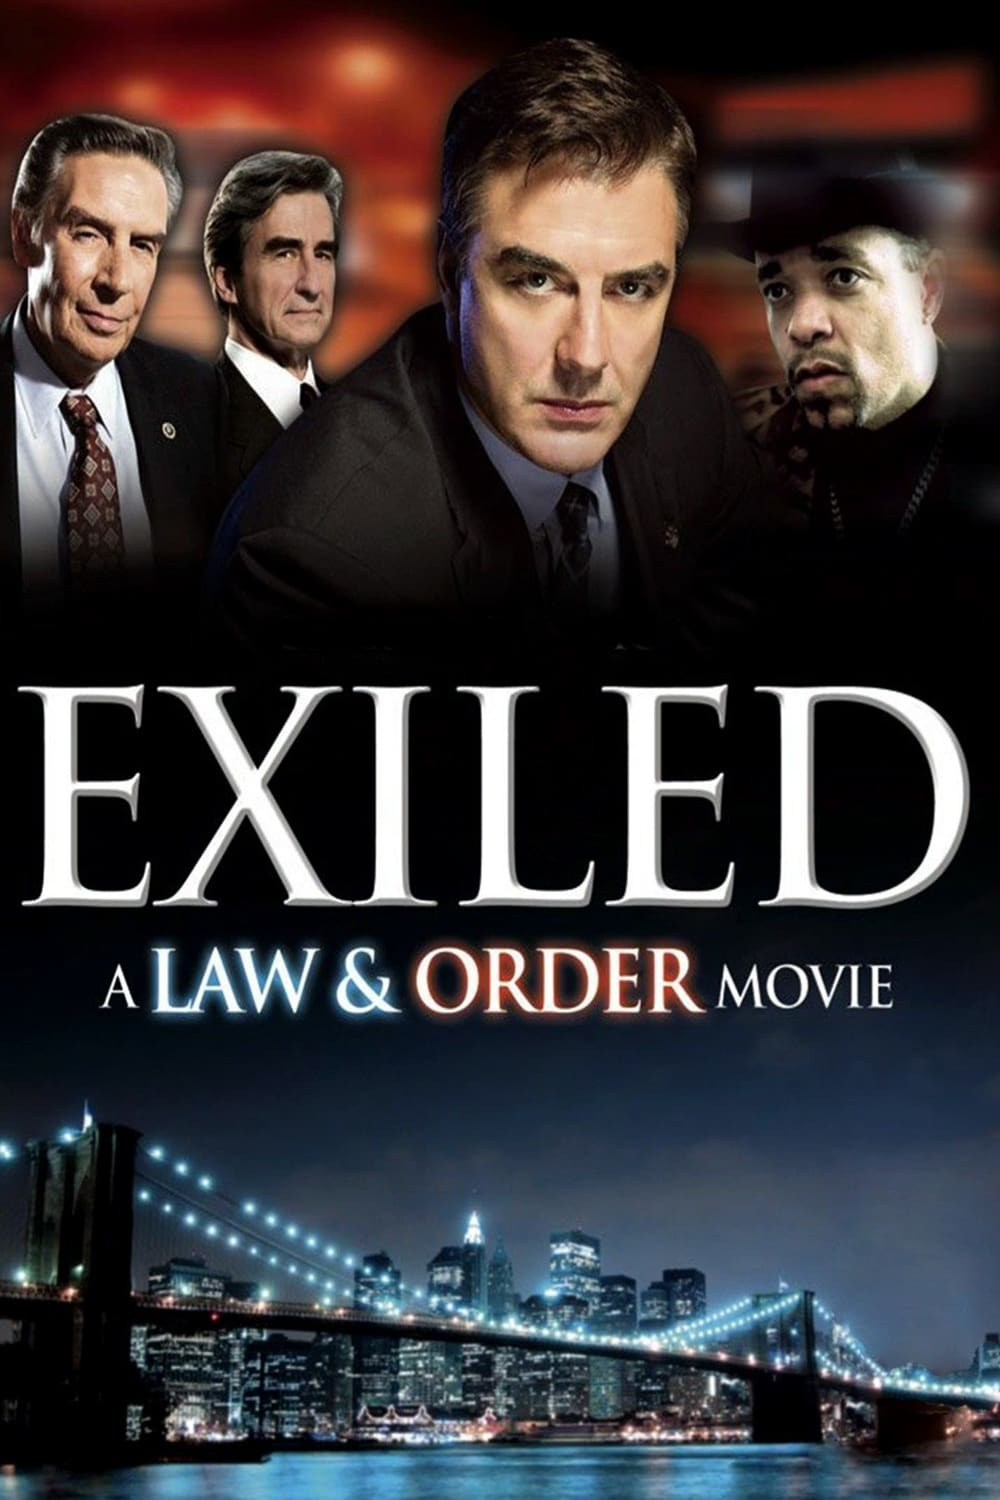 Exiled (1998)